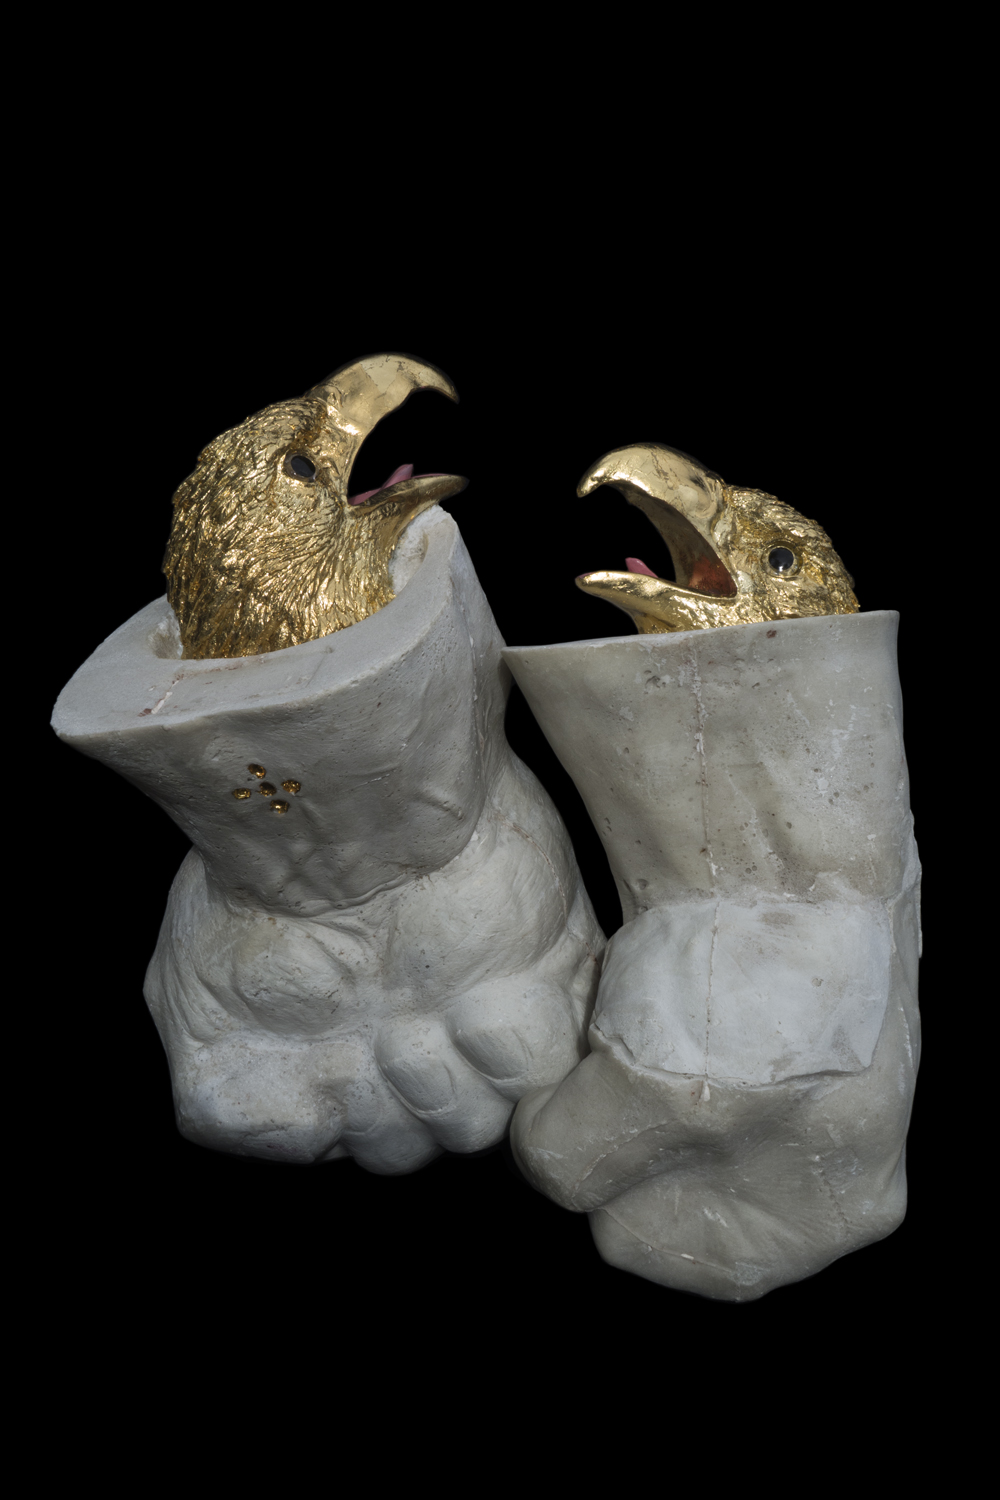 Myth of Might, 2013, cast marble, gilded plastic, 16x8x7